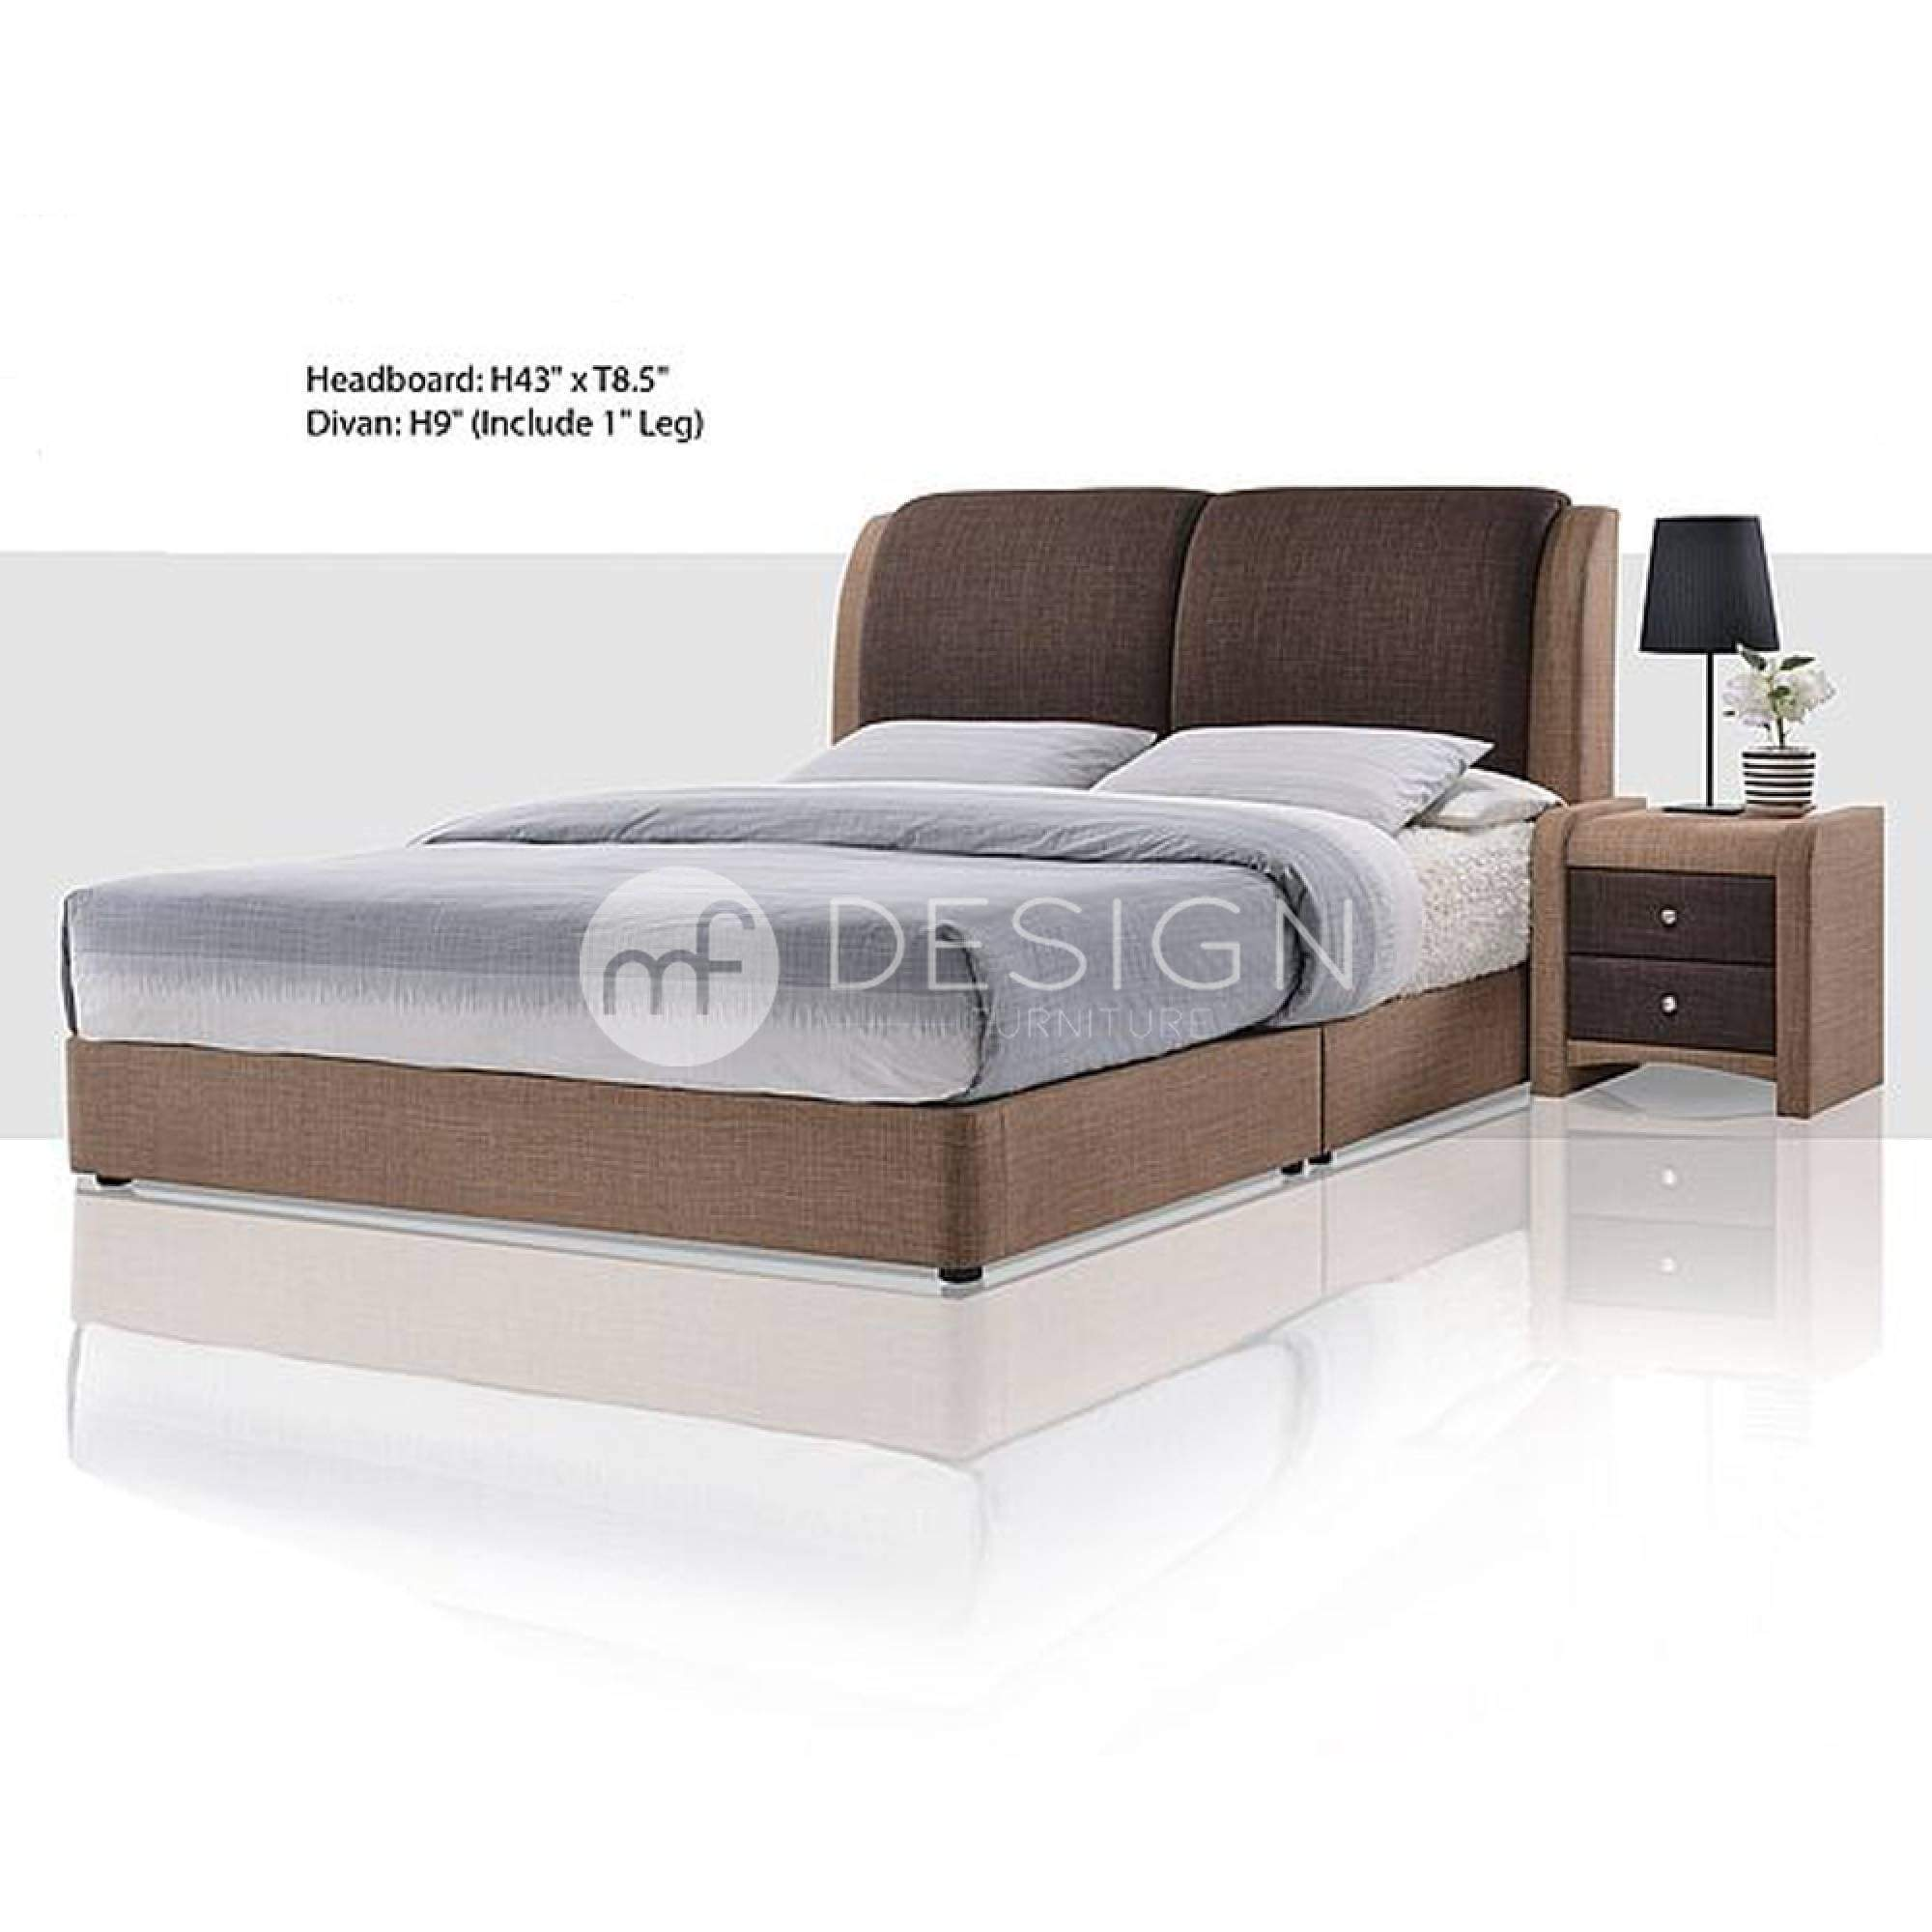 mfdesign88 MF DESIGN KOY DIVAN BED FRAME SINGLE QUEEN KING MALAYSIA